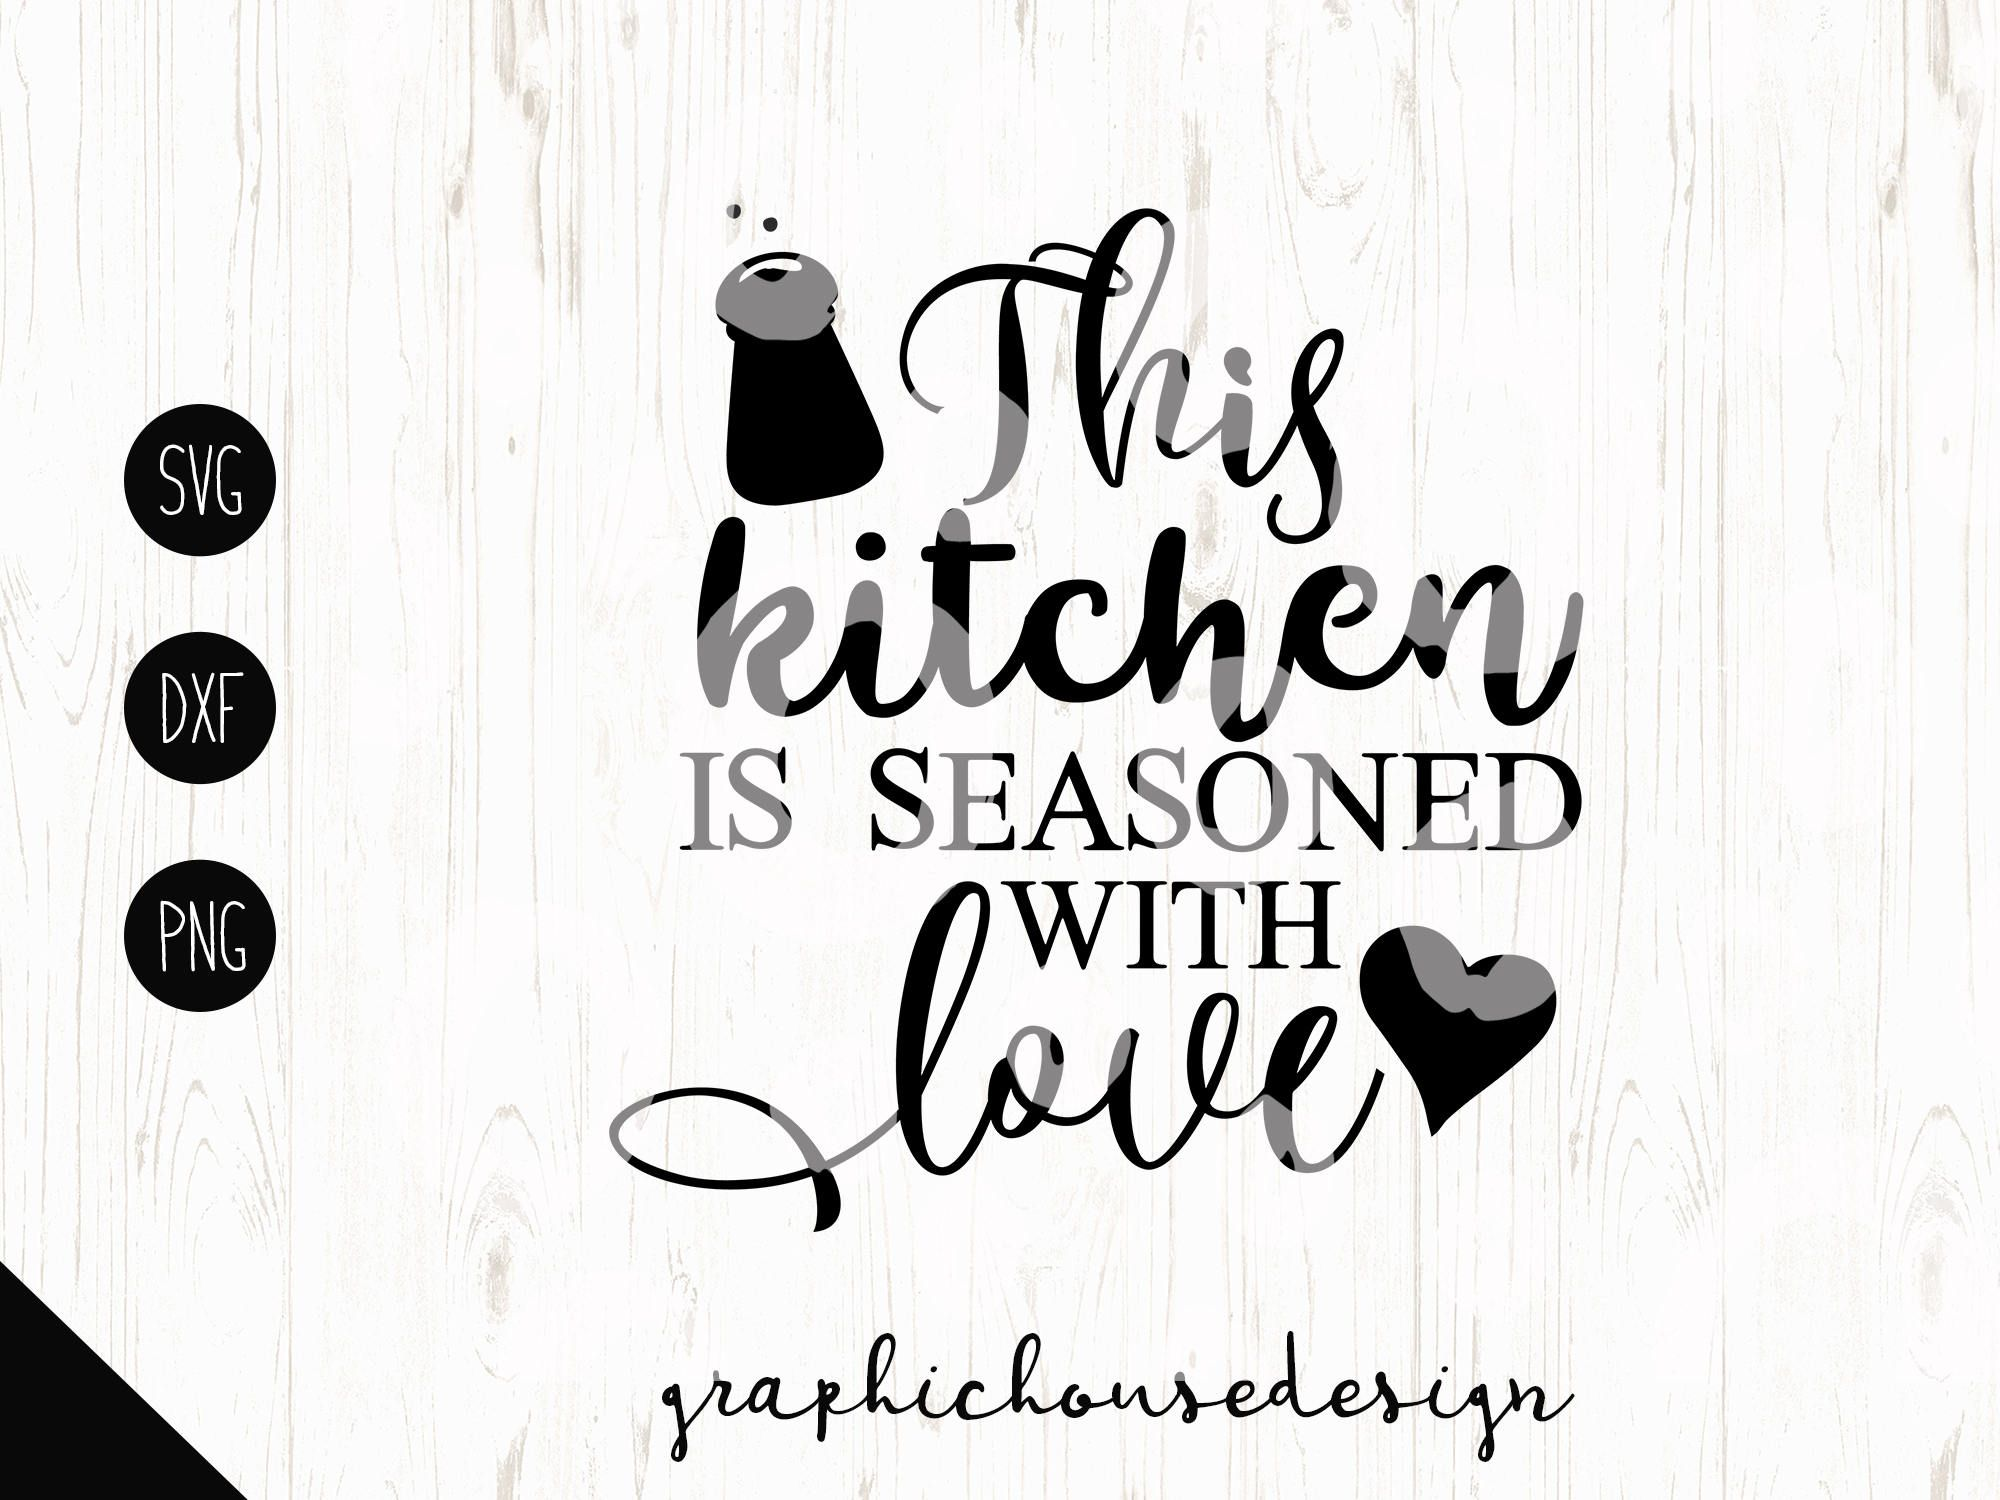 Kitchen svg kitchen quotes this kitchen is seasoned with love cutting file cooking svg cook svg stencil design vinyl cut design by graphichousedesign